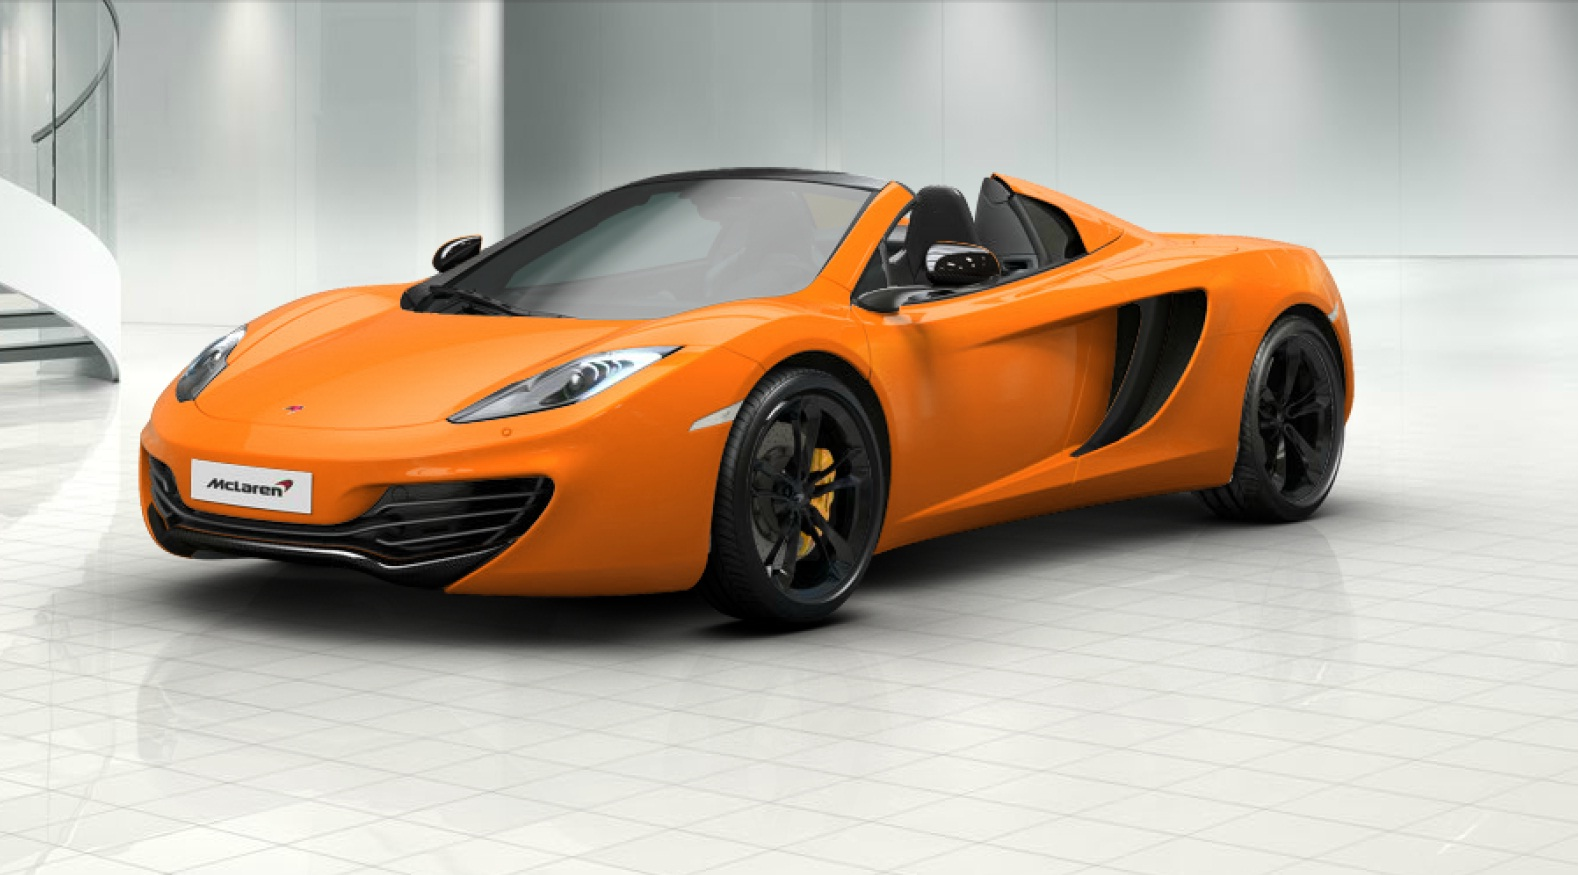 2013 mclaren mp4-12c coupe